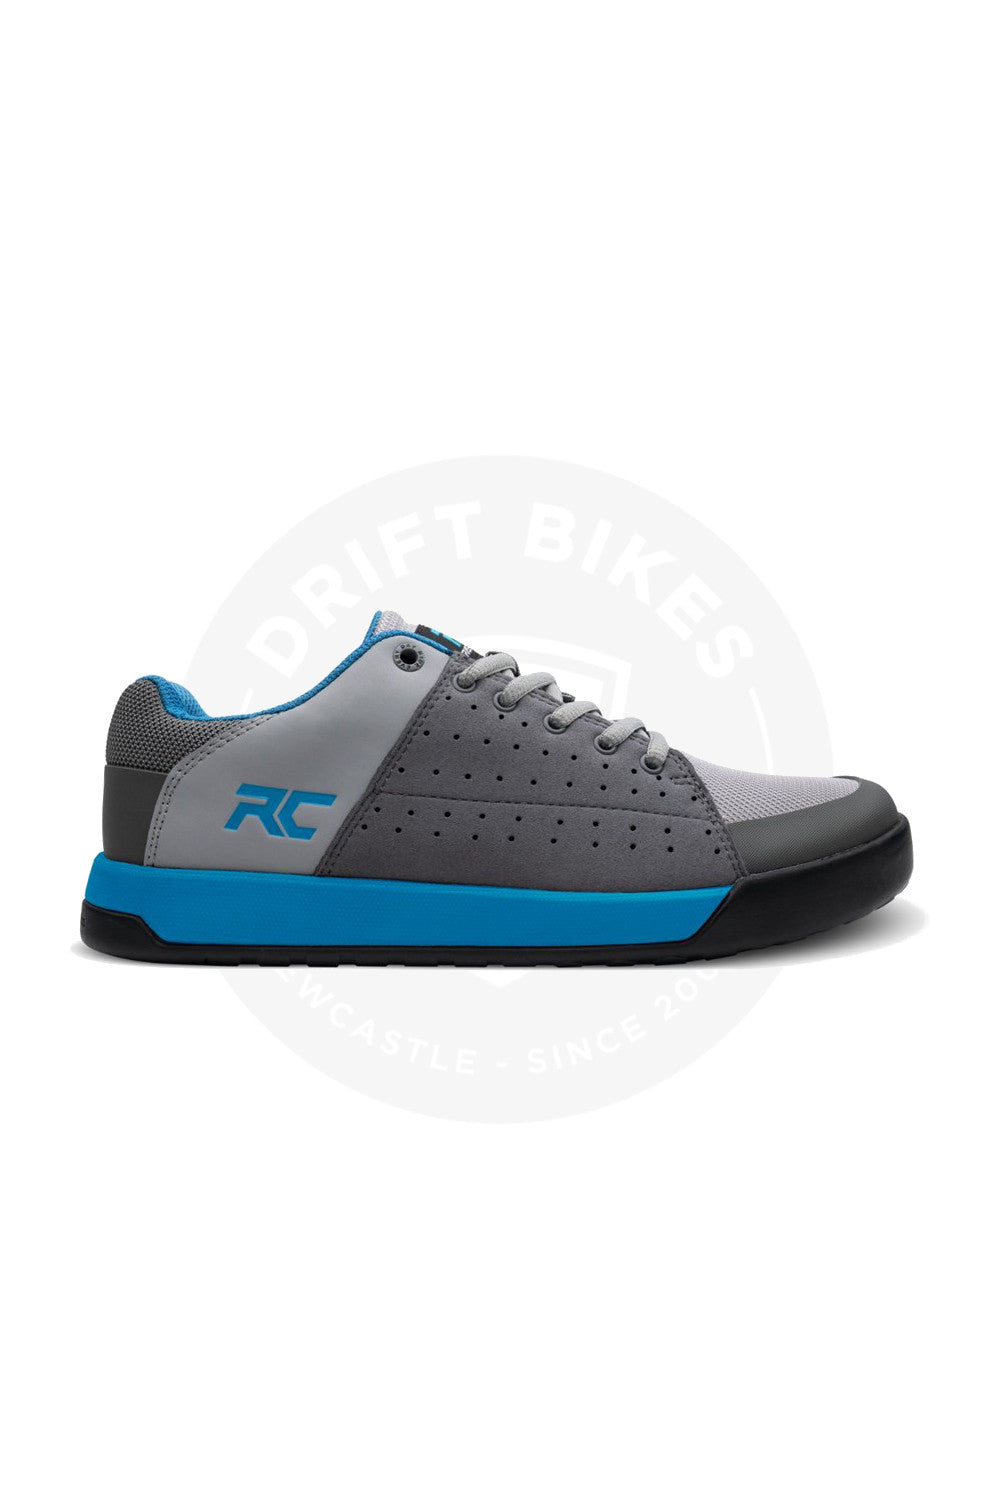 RIDE CONCEPTS LIVEWIRE WOMENS FLAT SHOE